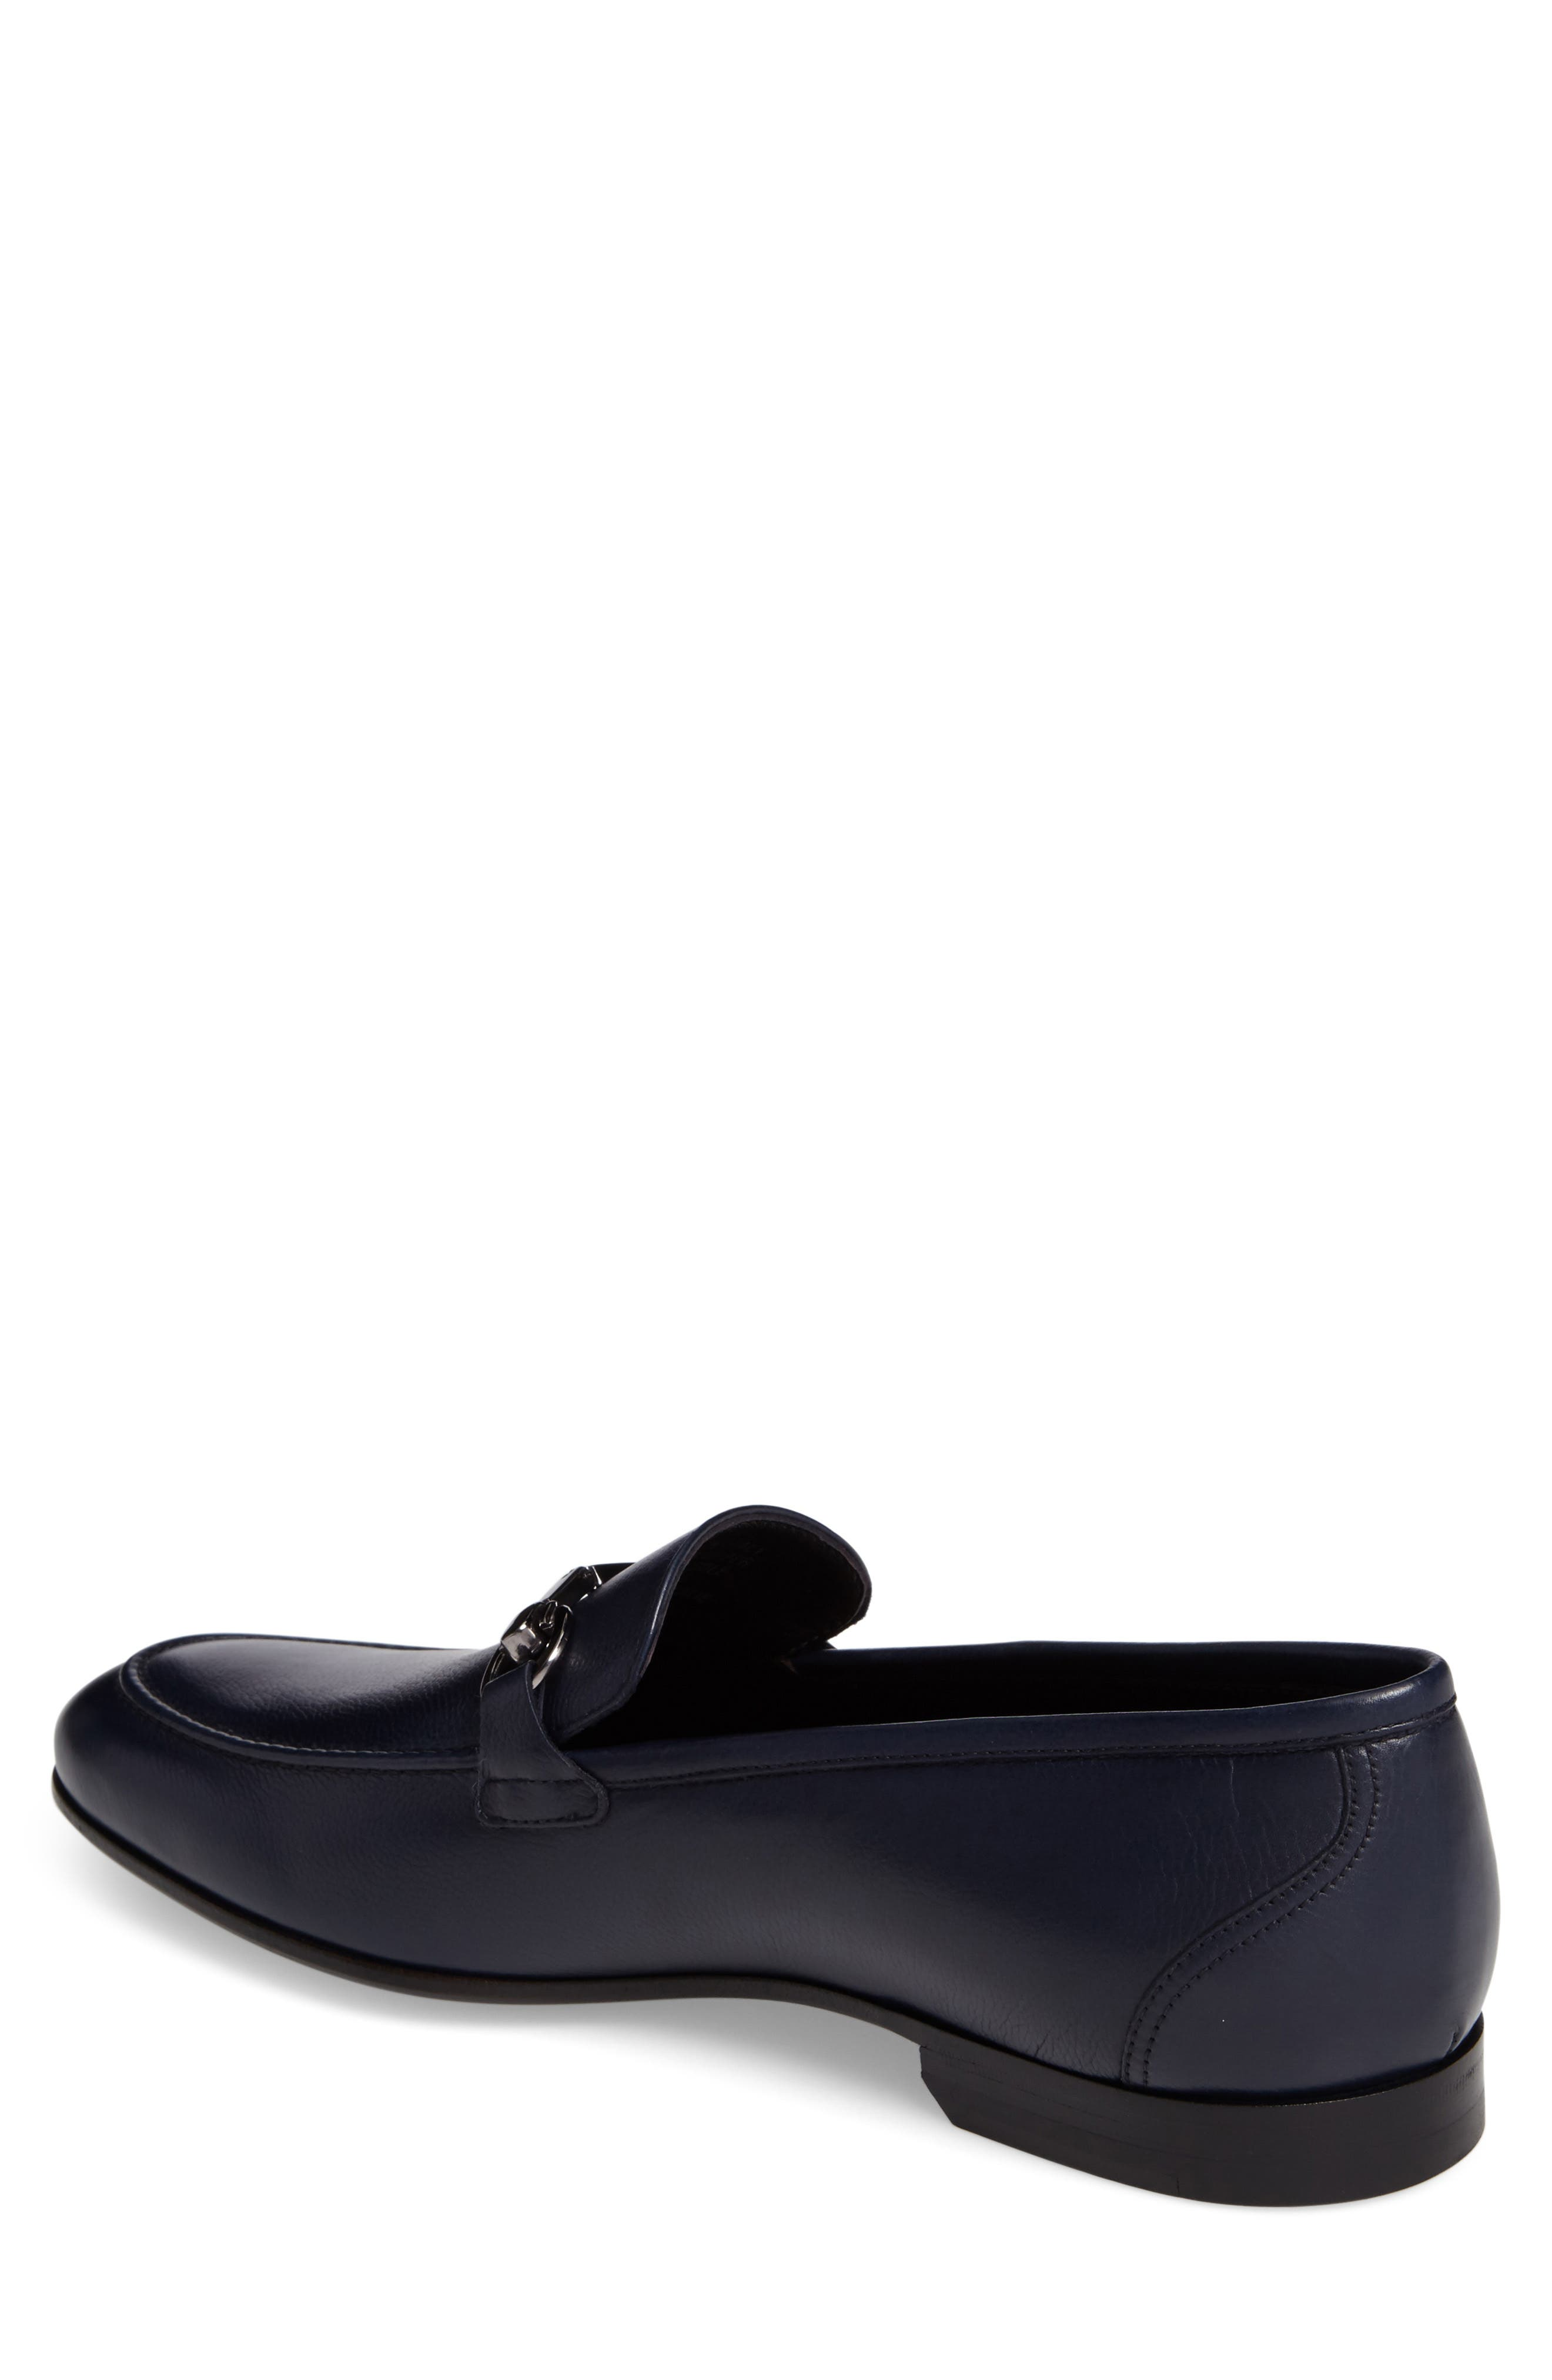 Brianza Bit Loafer,                             Alternate thumbnail 13, color,